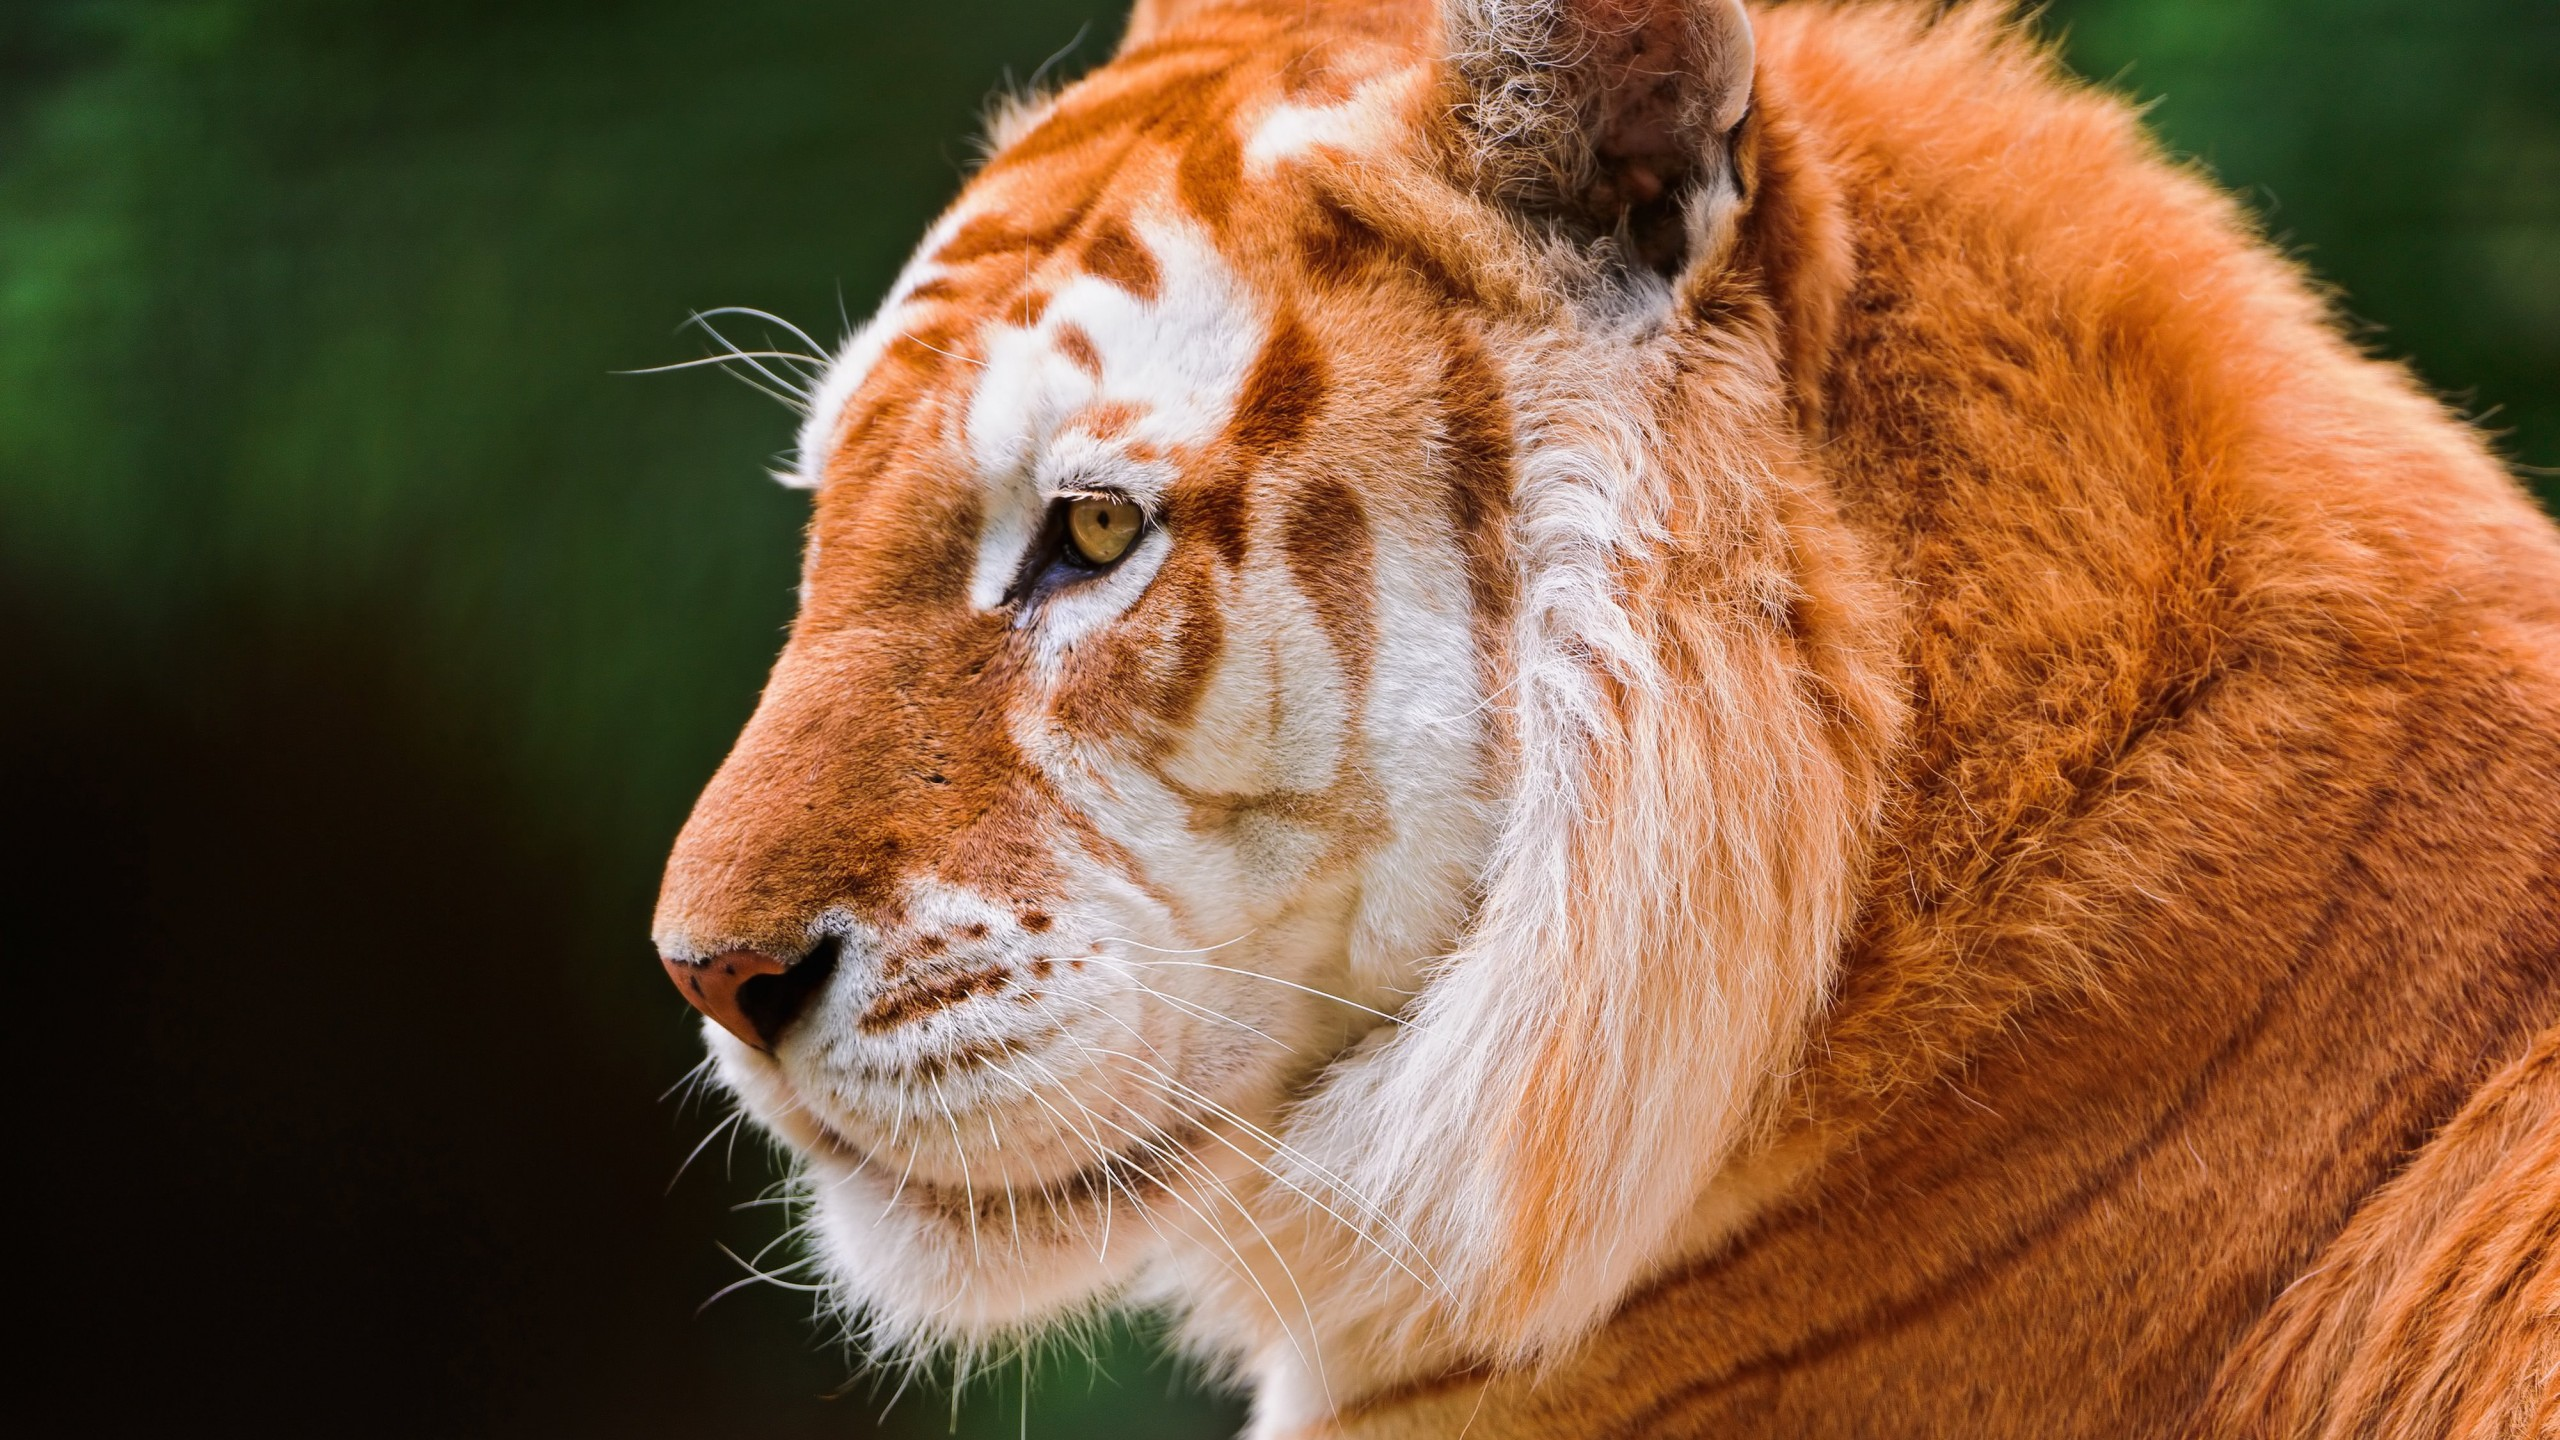 Tiger Wallpaper for Desktop 2560x1440